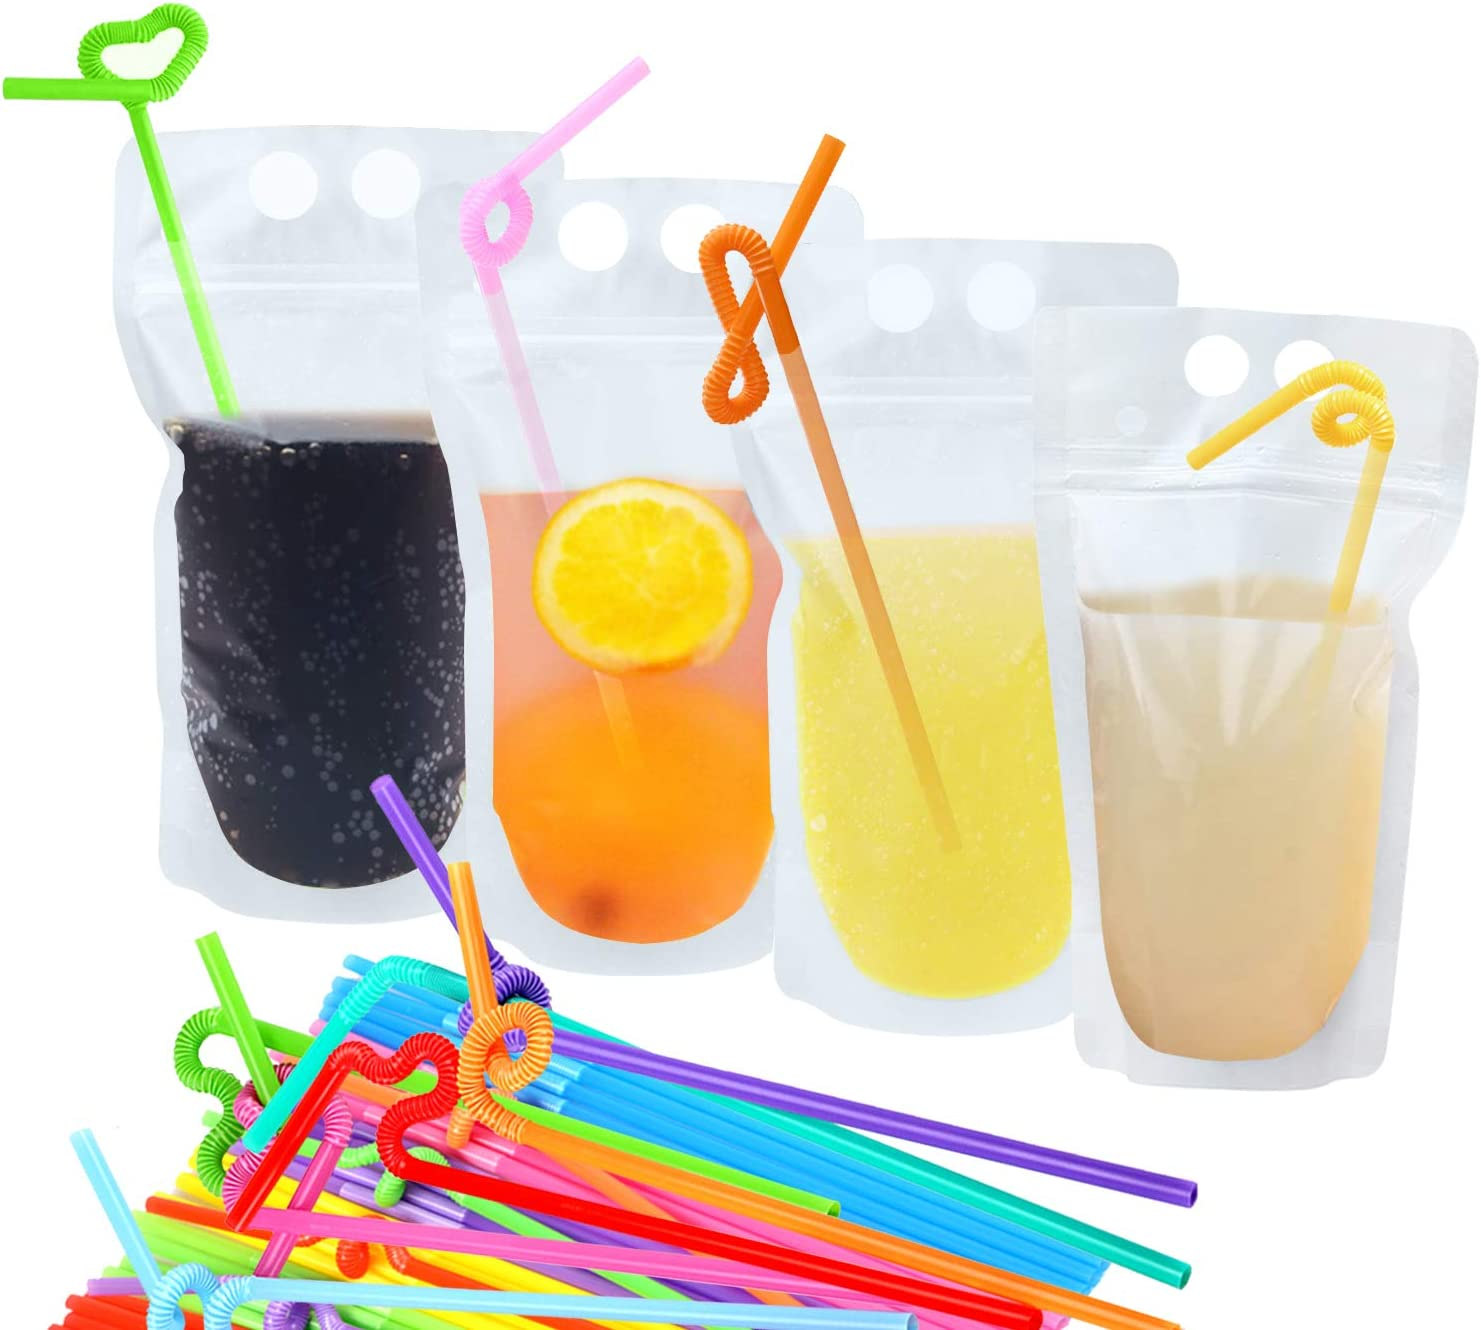 Amurgo 50 Piece Clear Juice Pouches with 100 Straws, Hand-held Reusable Adult Drink Pouches with Straws and Zippers, Drink Bags for Frozen Juice, Coffee, Tea, Hot Milk